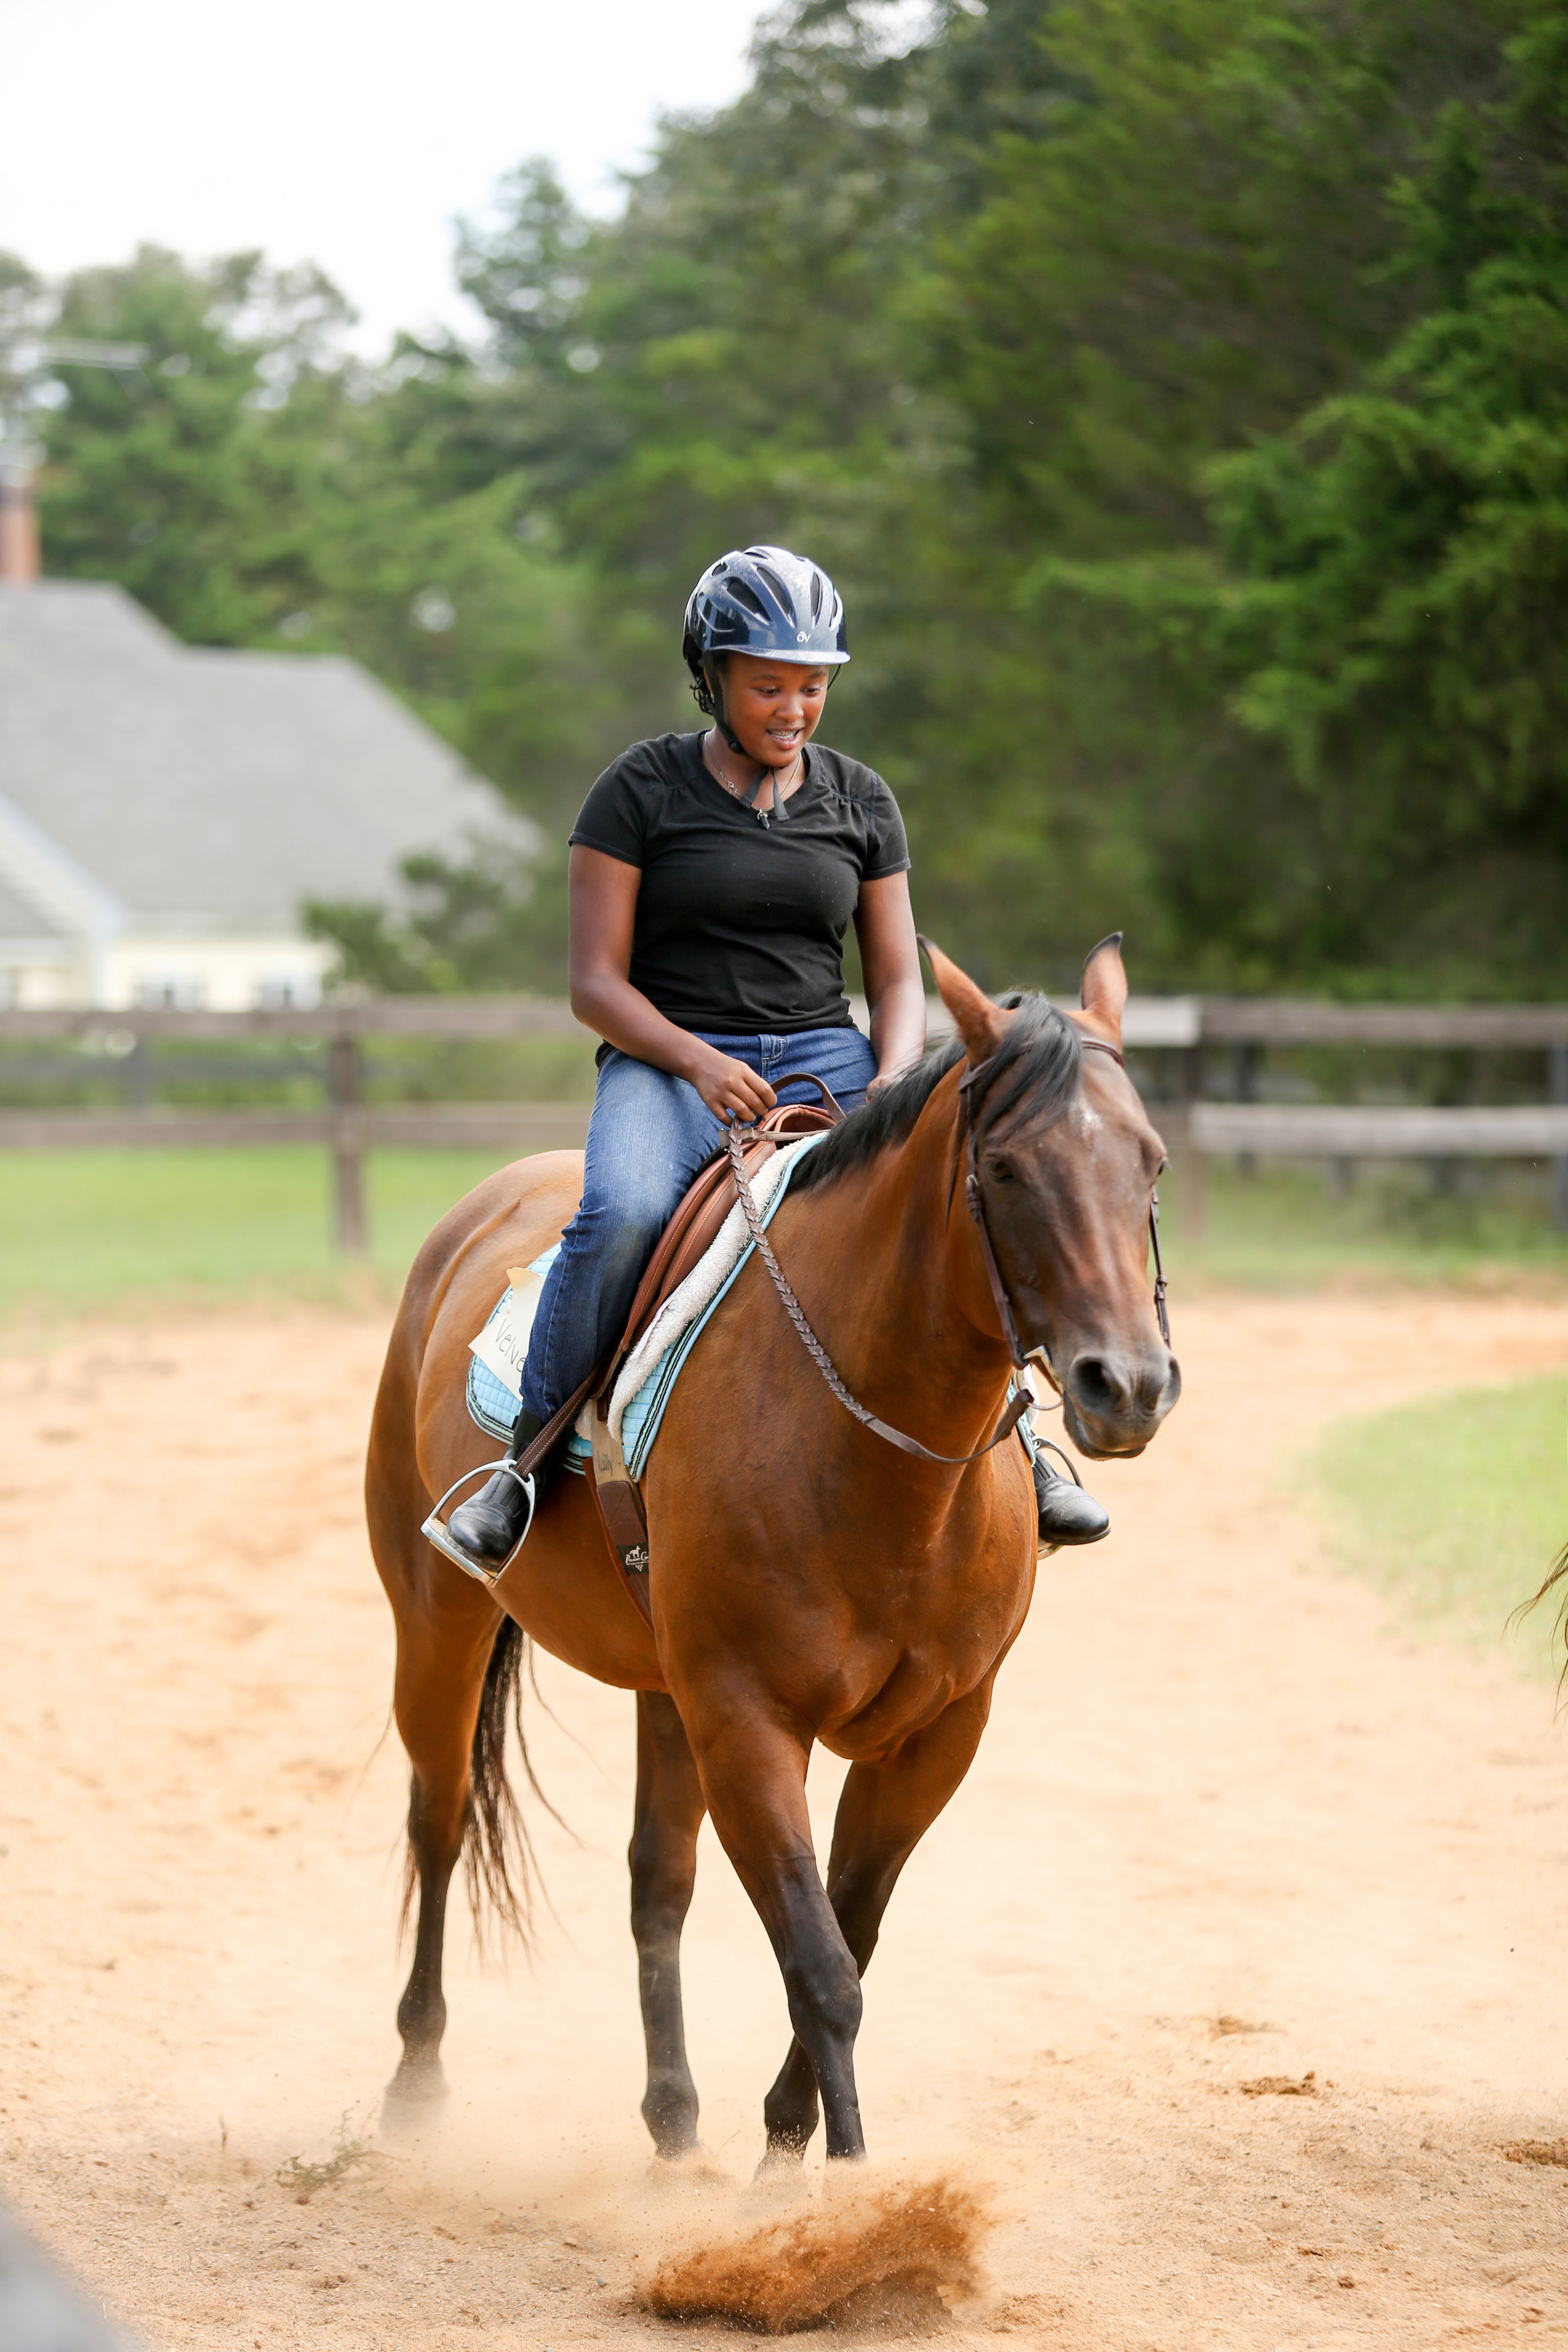 Horses are proven to be helpful therapy animals for children and adults of all ages.